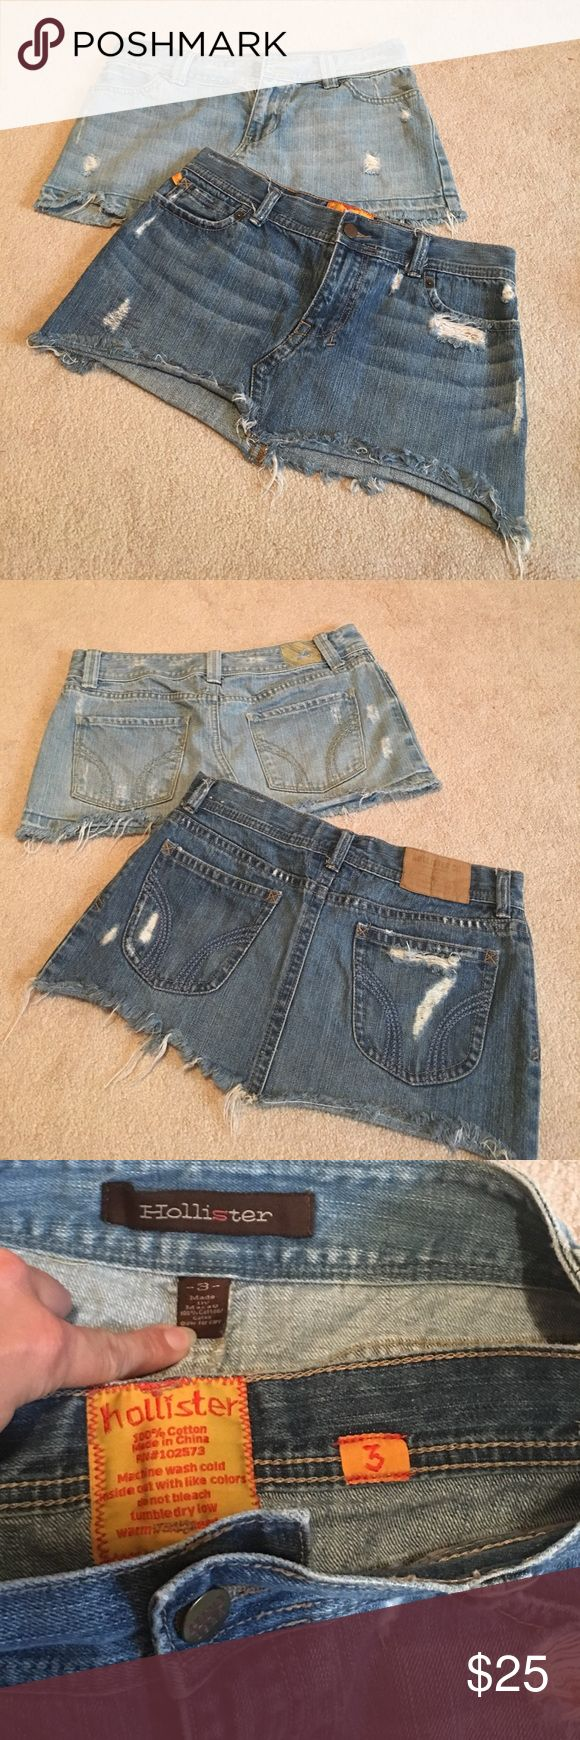 Lot of 2 Hollister distressed Jean skirts Both Sz 3 distressed look. Great condition.  Have way too many jean skirts so time to part with more of them. Smoke and pet free home Hollister Skirts Mini